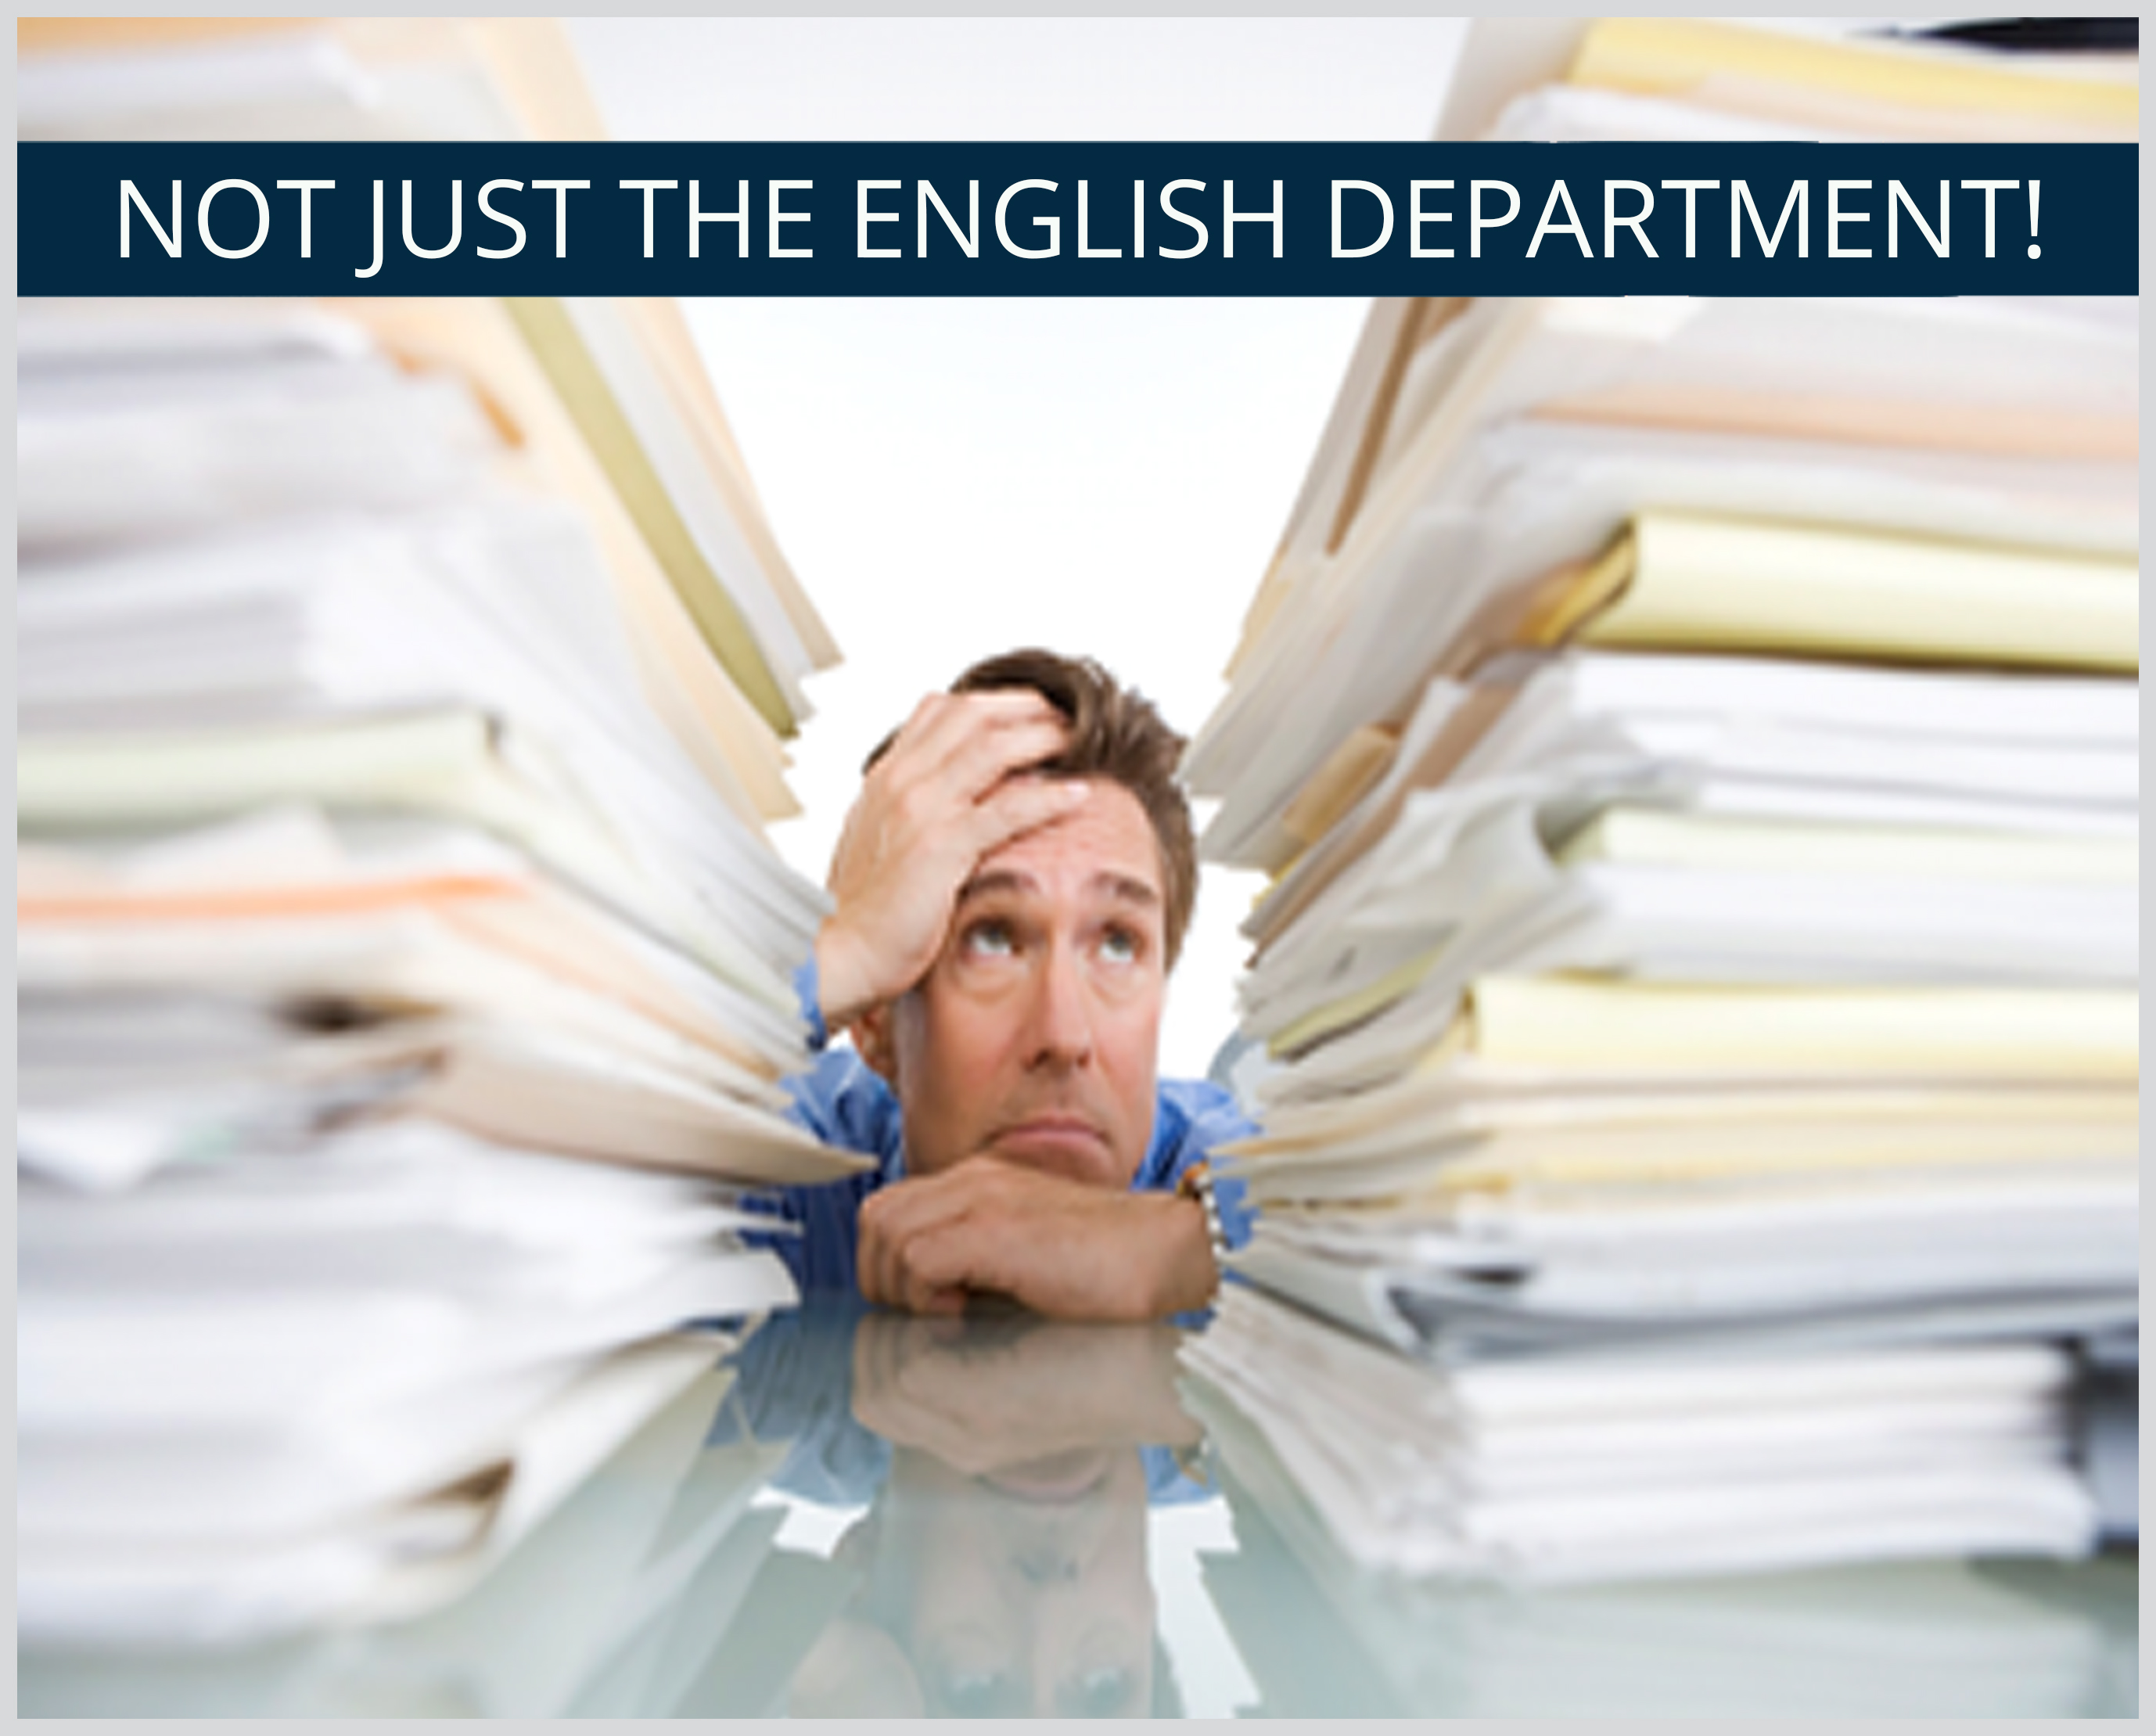 NOT JUST THE ENGLISH DEPARTMENT